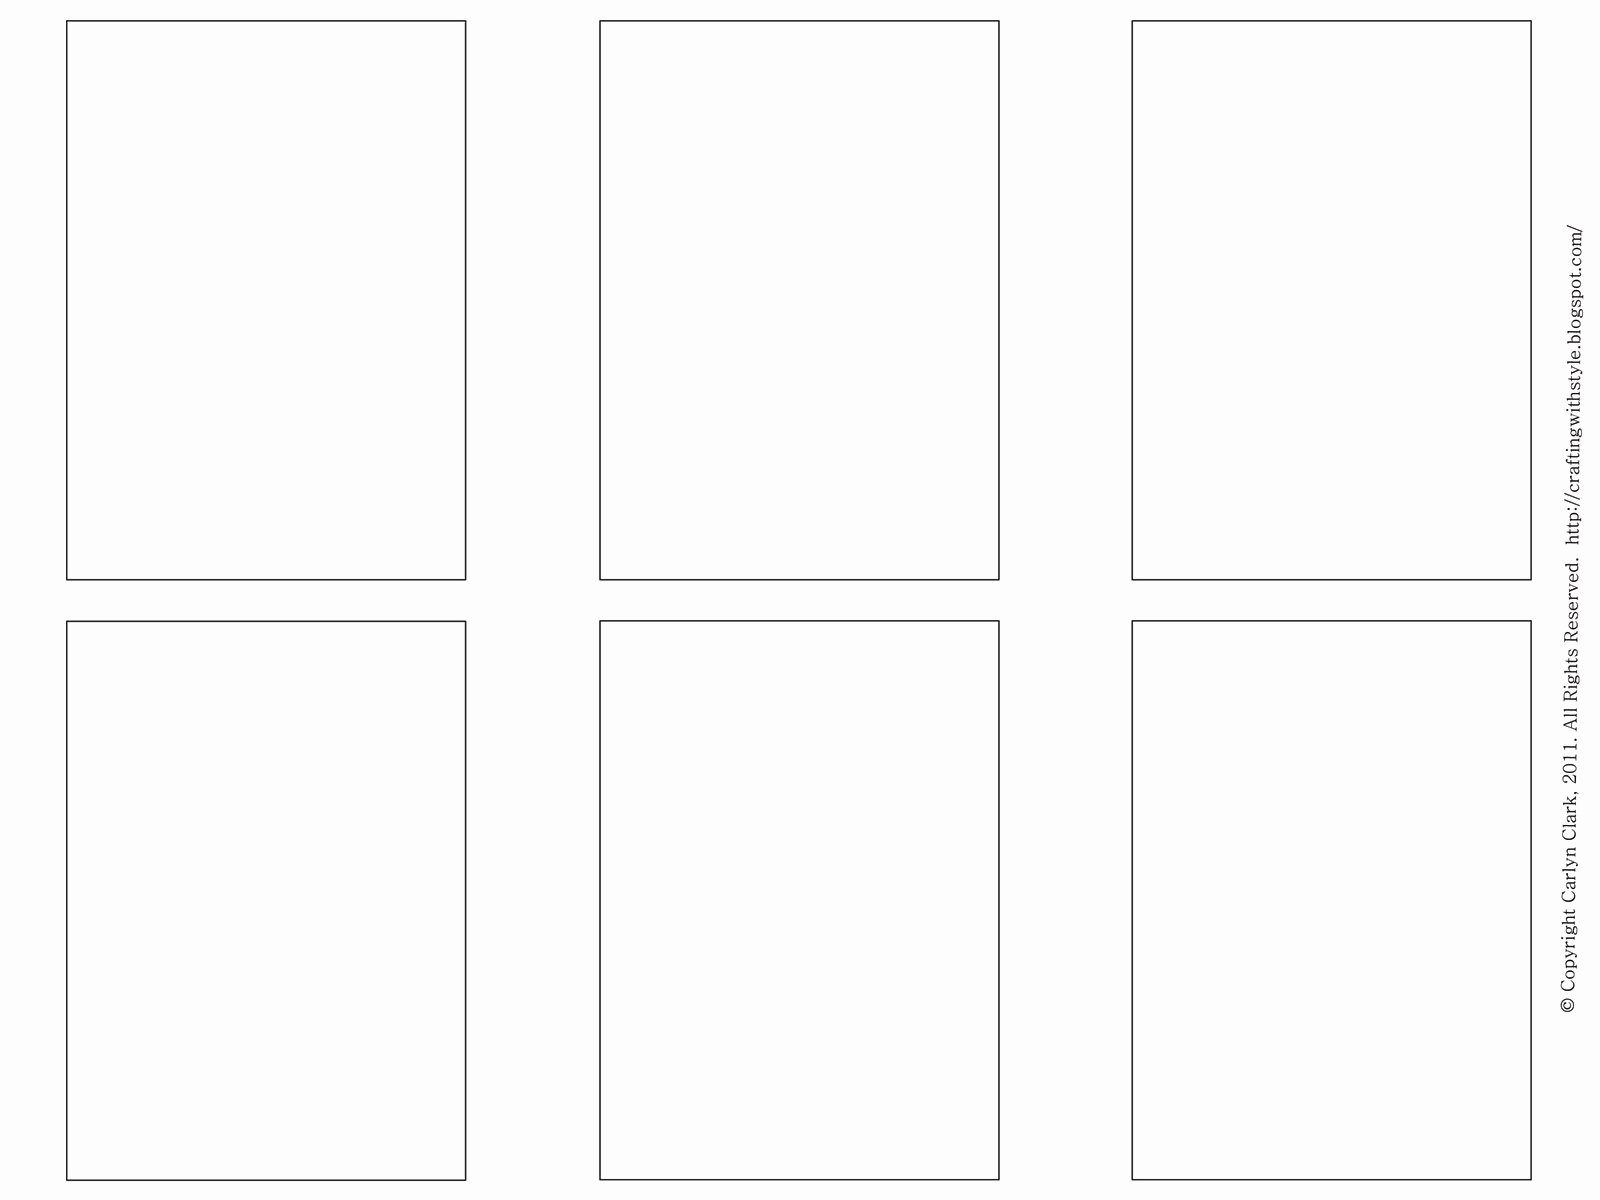 Printable Trading Card Template Luxury Trading Card Template 2017